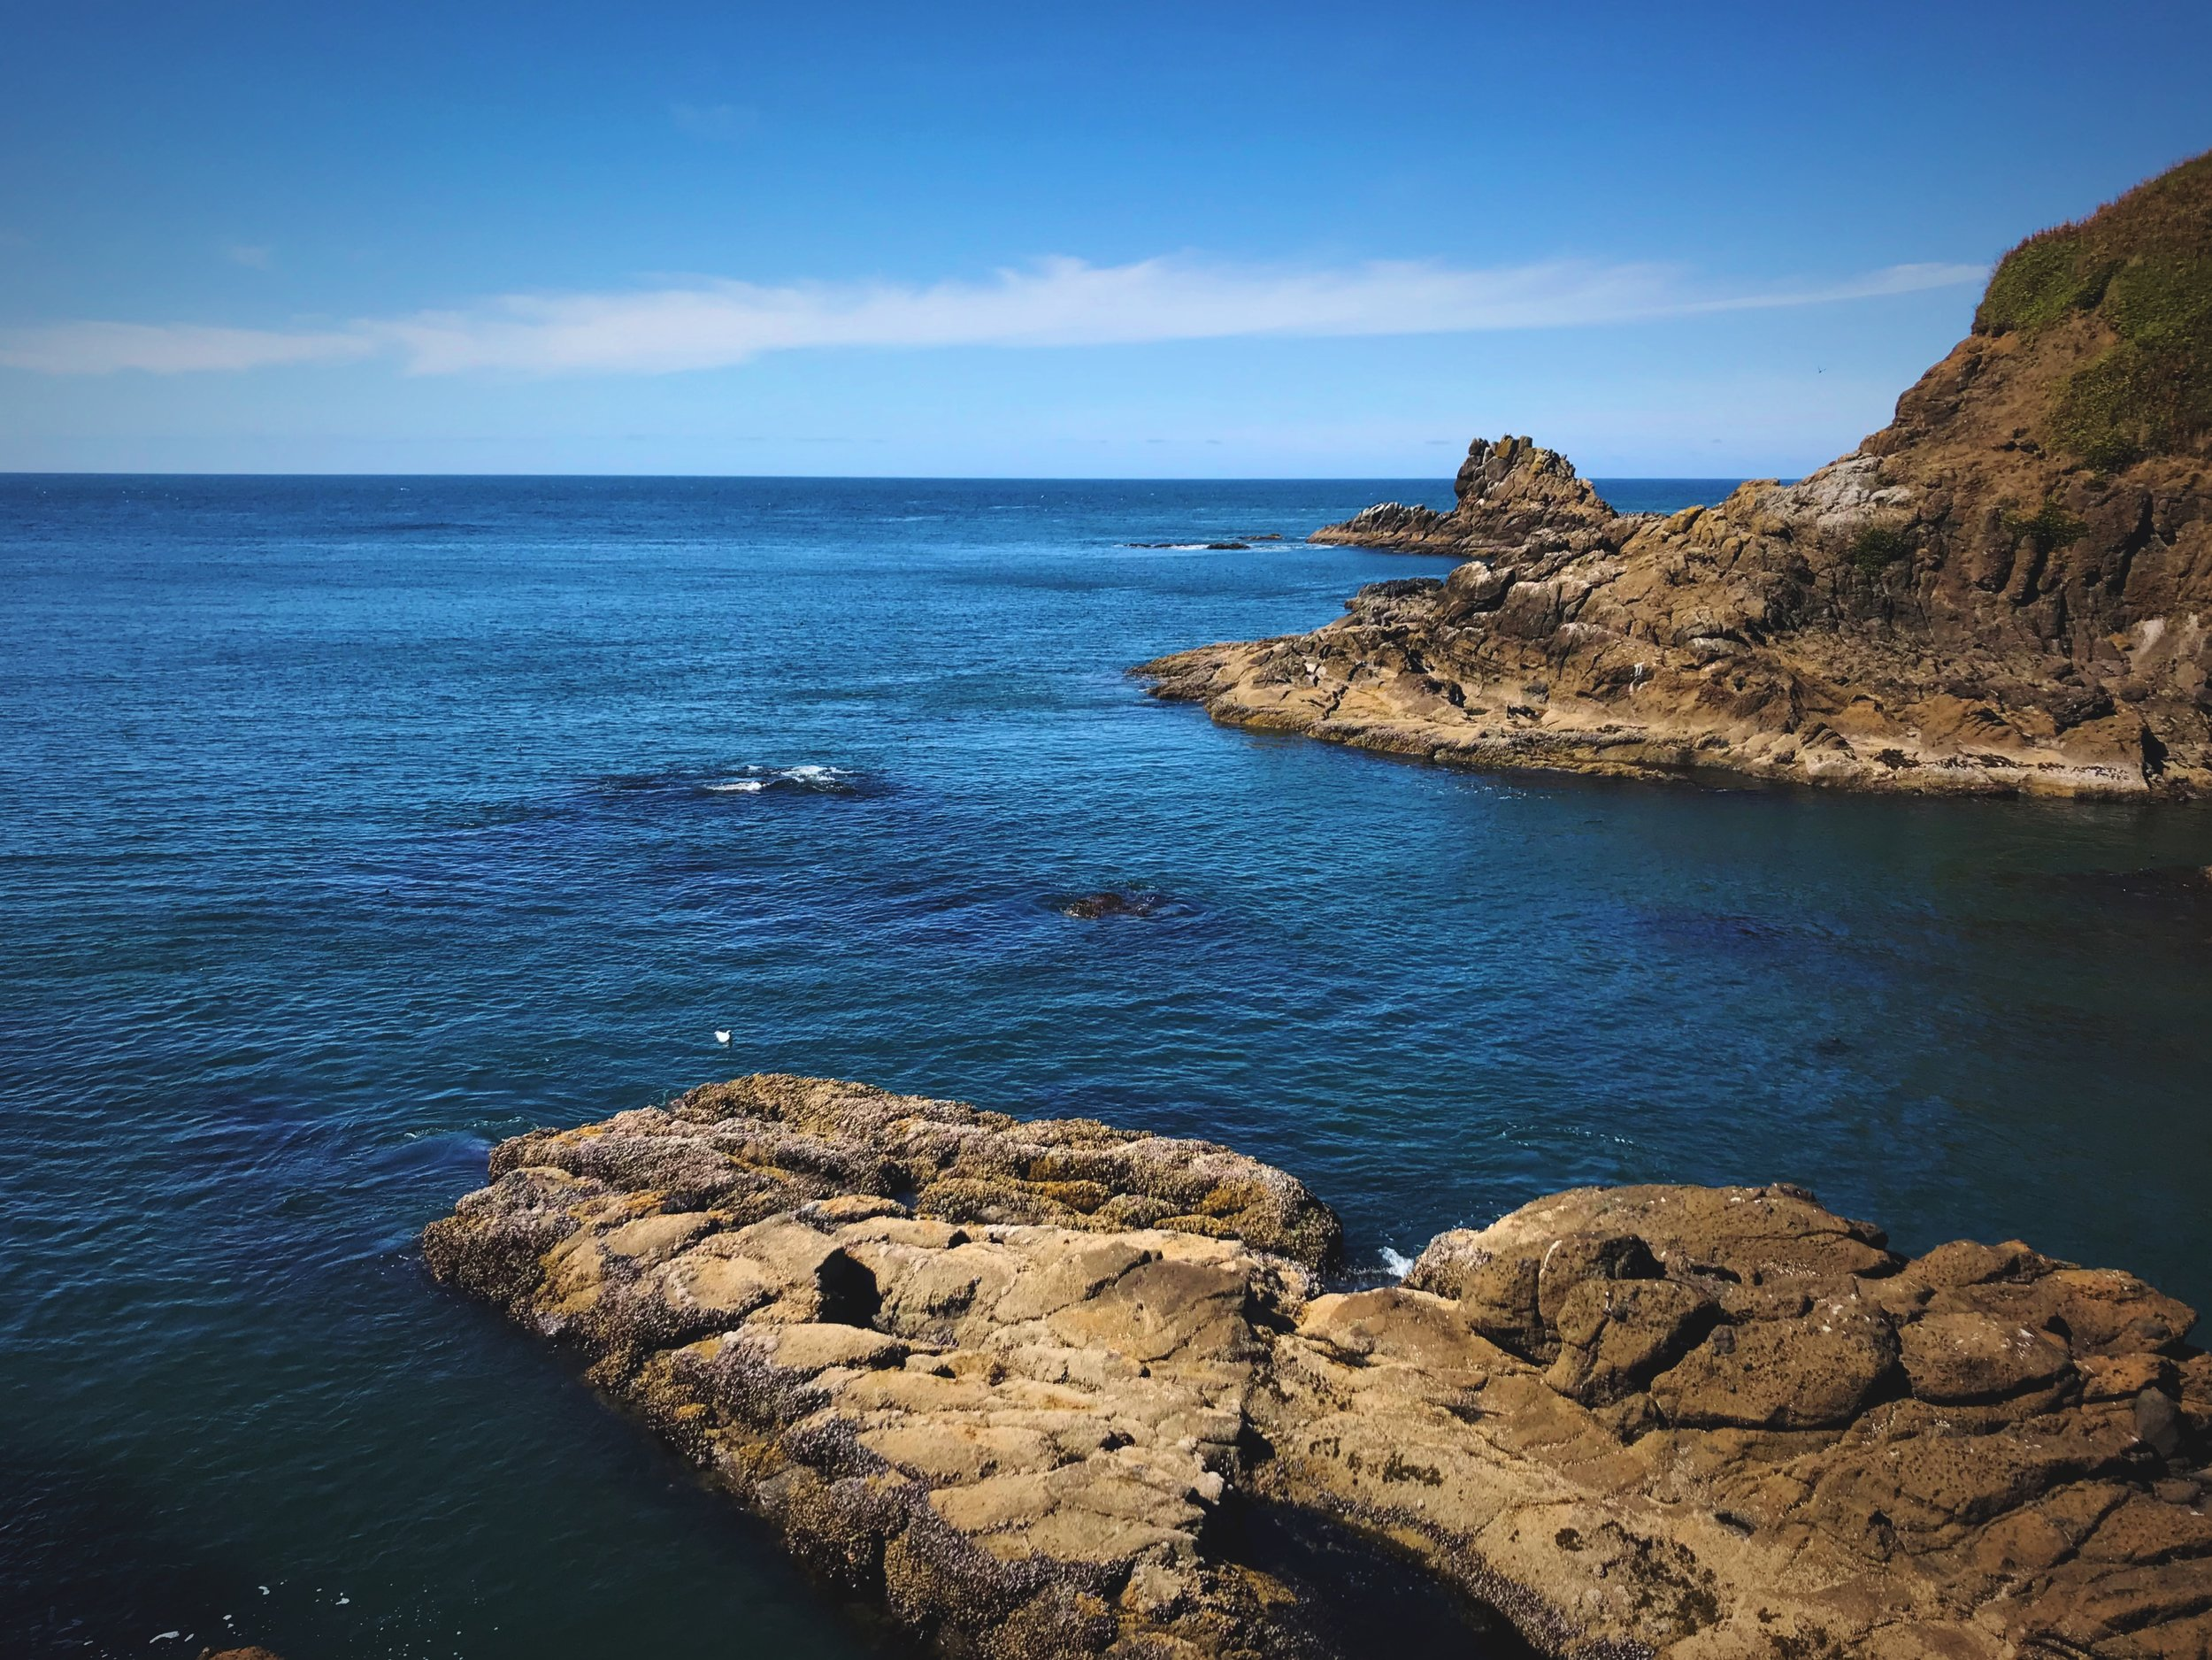 Bring your binoculars, from the rocks at Quarry Cove you can see Seal Rock with lots of marine mammals.